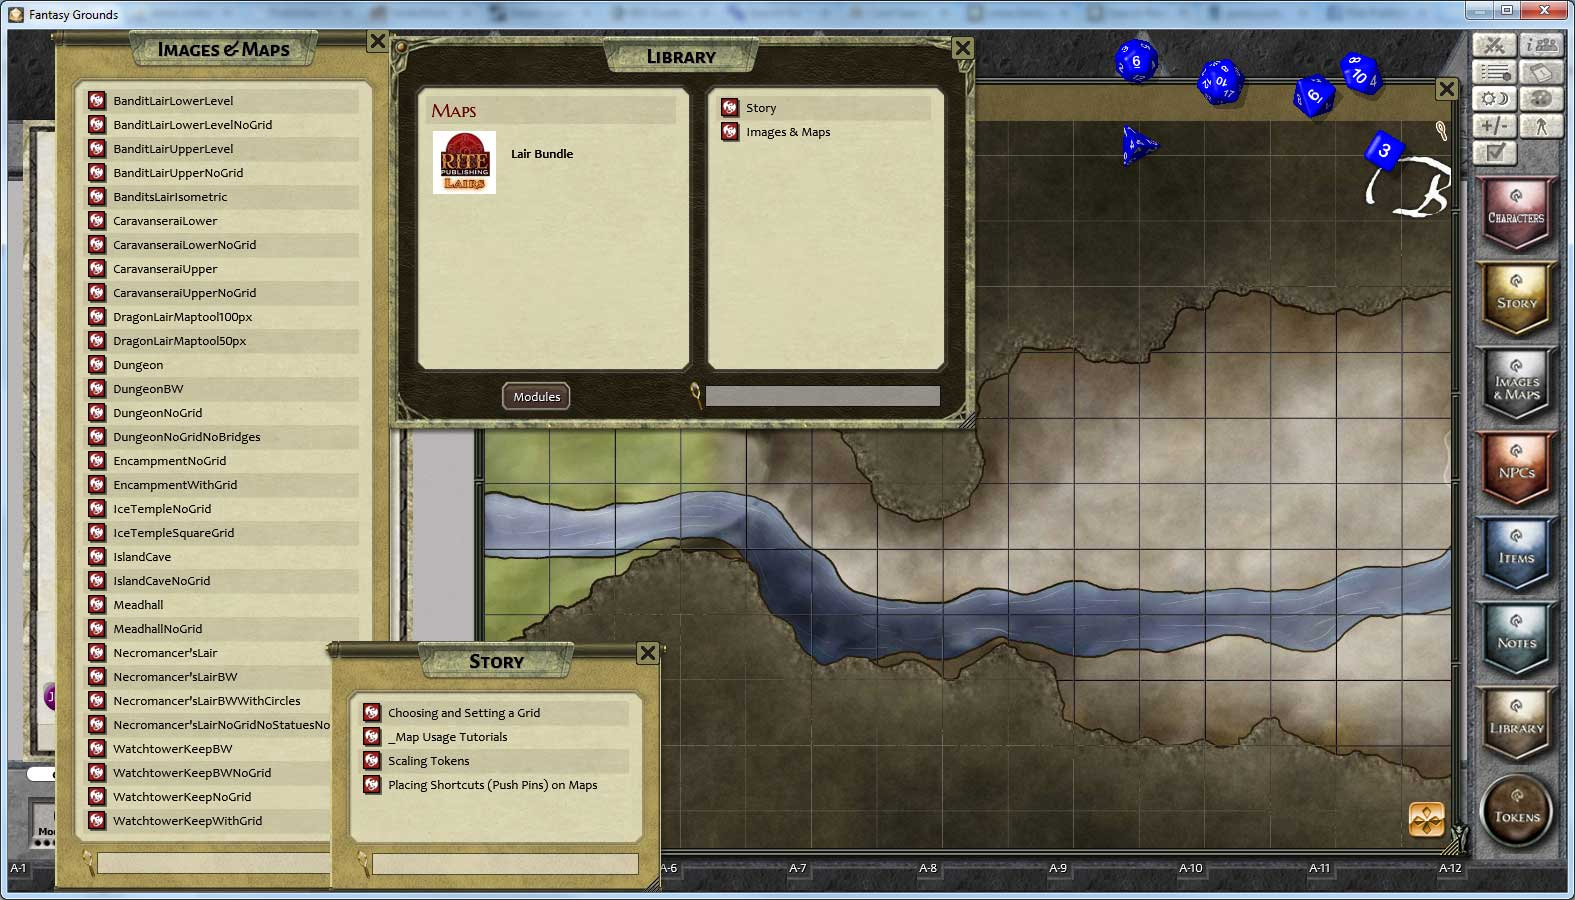 Fantasy Grounds - Rite Publishing Fantastic Maps - Lairs Pack screenshot